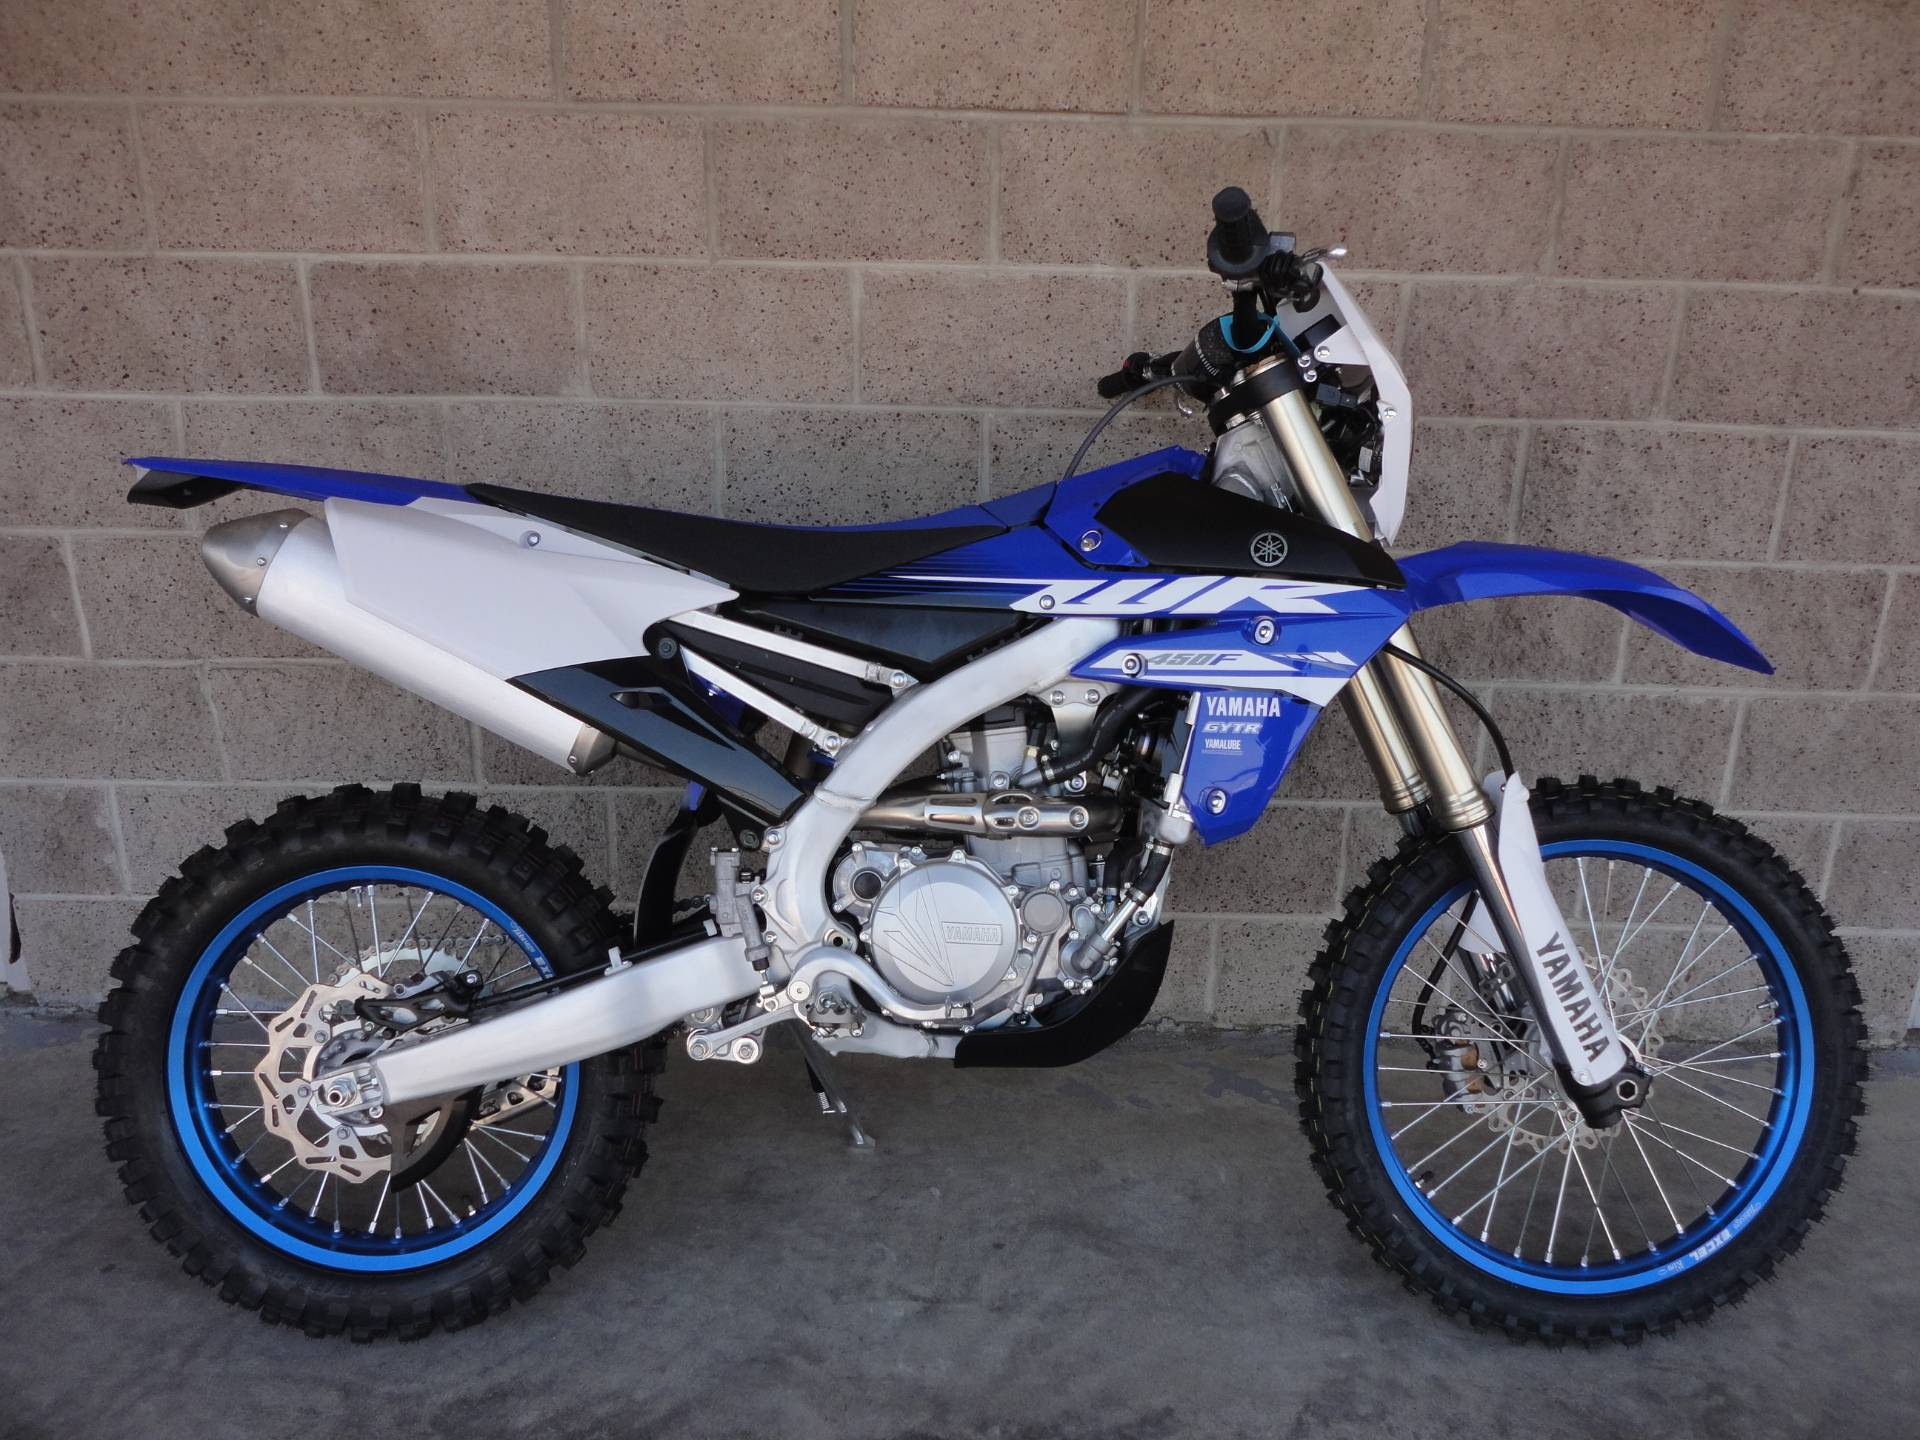 2018 yamaha wr450f motorcycles denver colorado p0006 for Yamaha installment financing